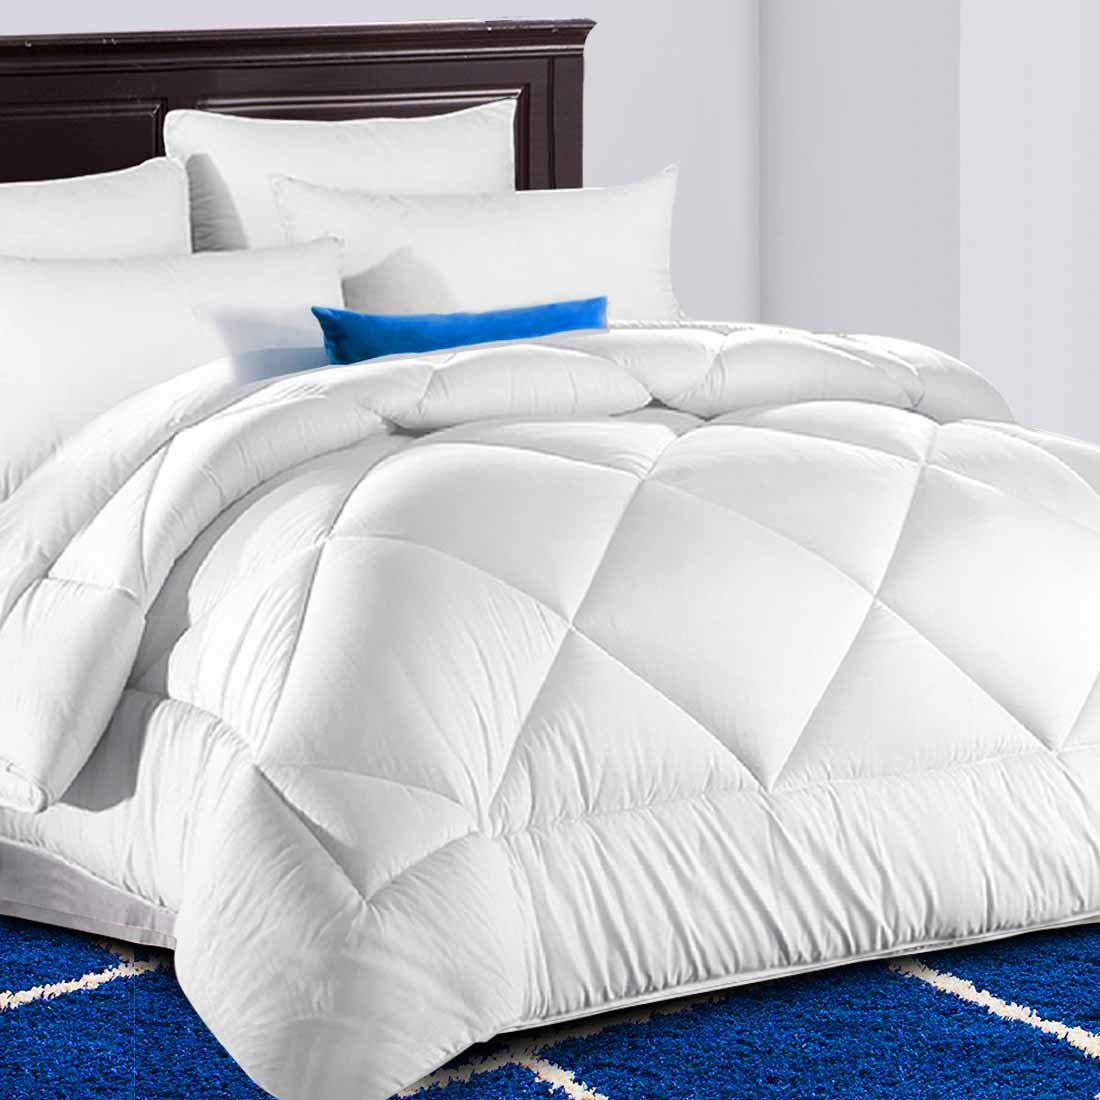 TEKAMON All Season Queen Comforter Summer Cooling 2100 Series Soft Quilted Down